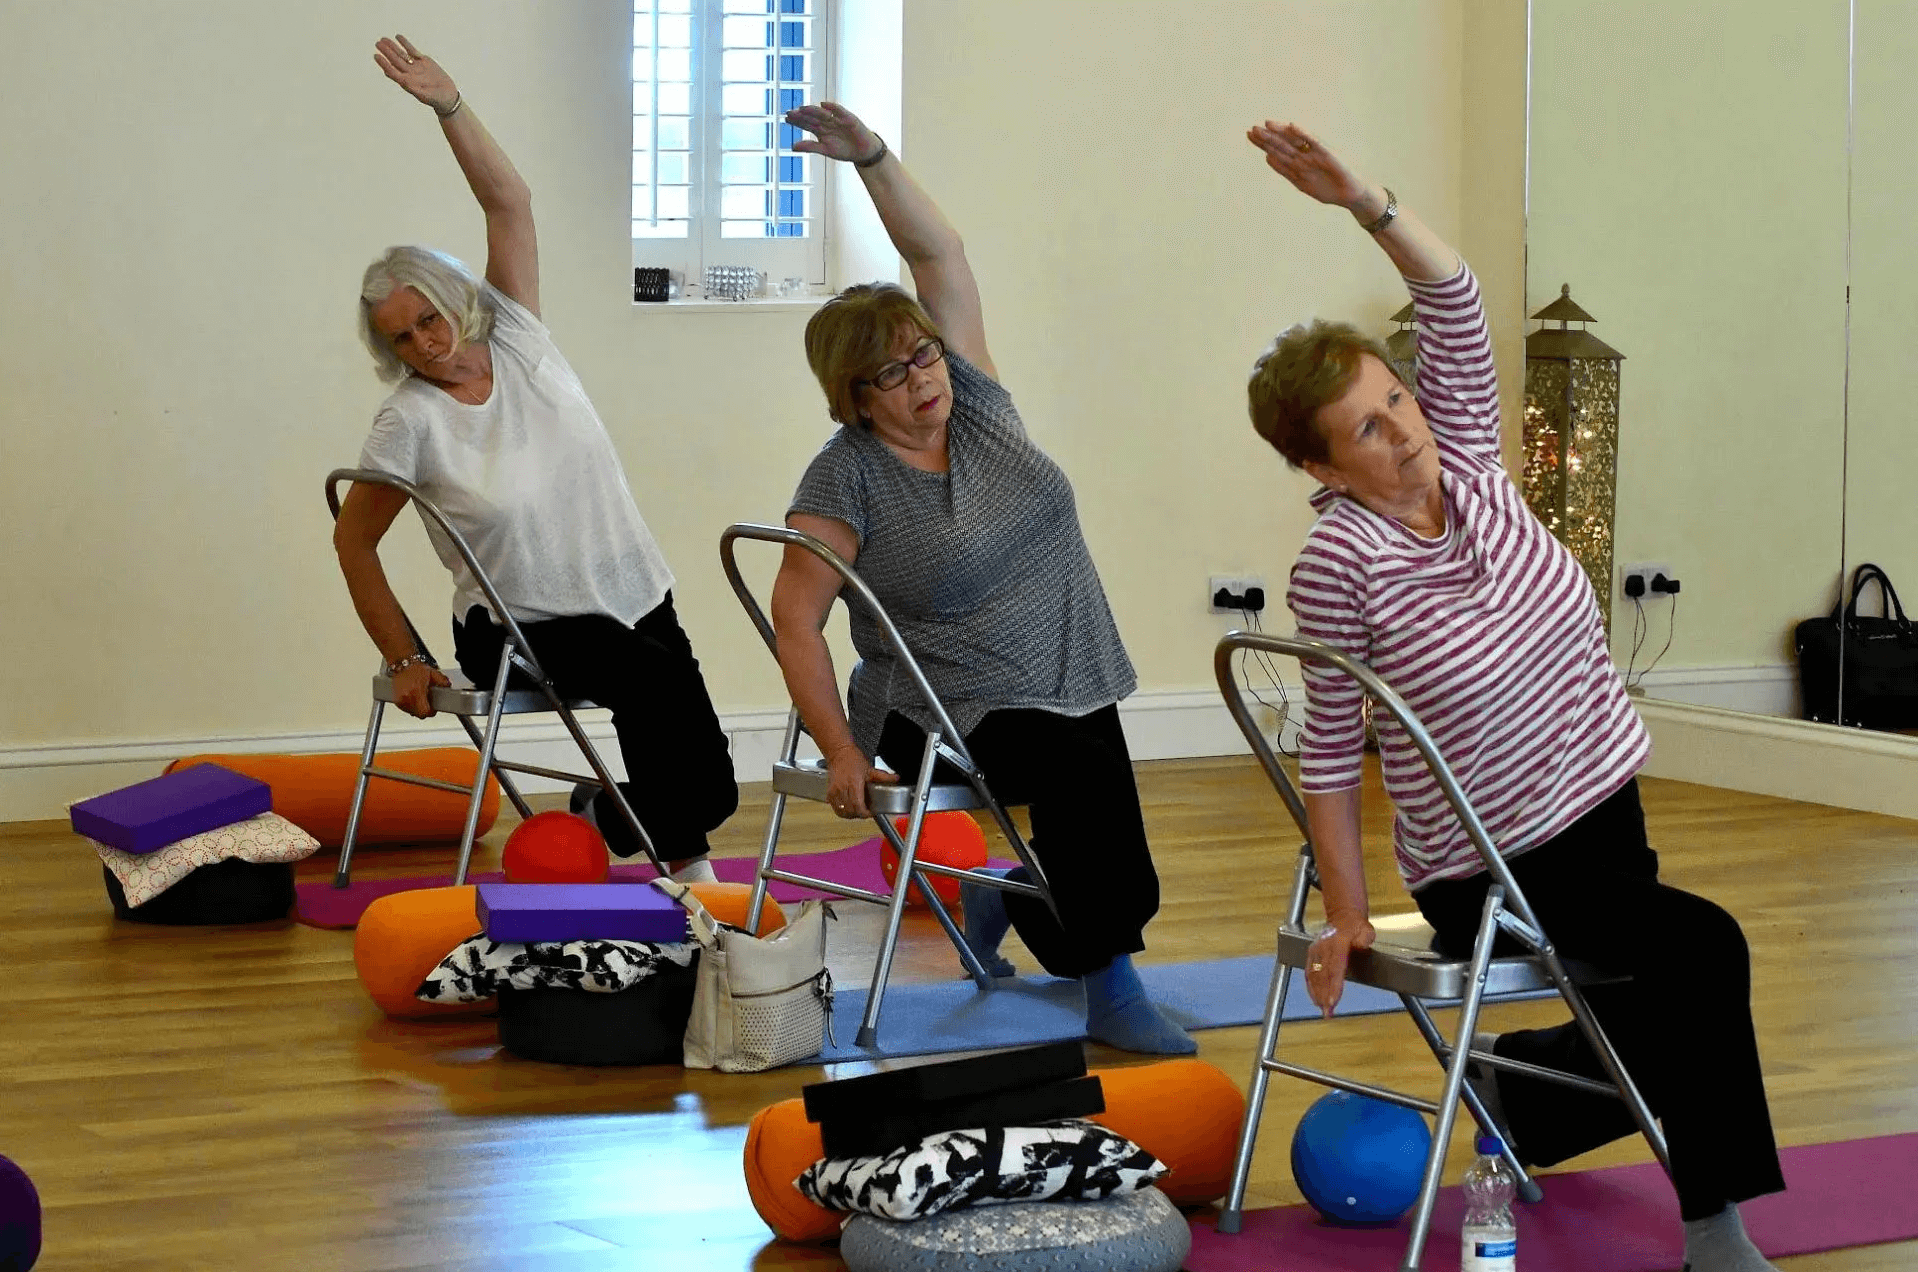 Chair Yoga from Studio to Care/Nursing homes